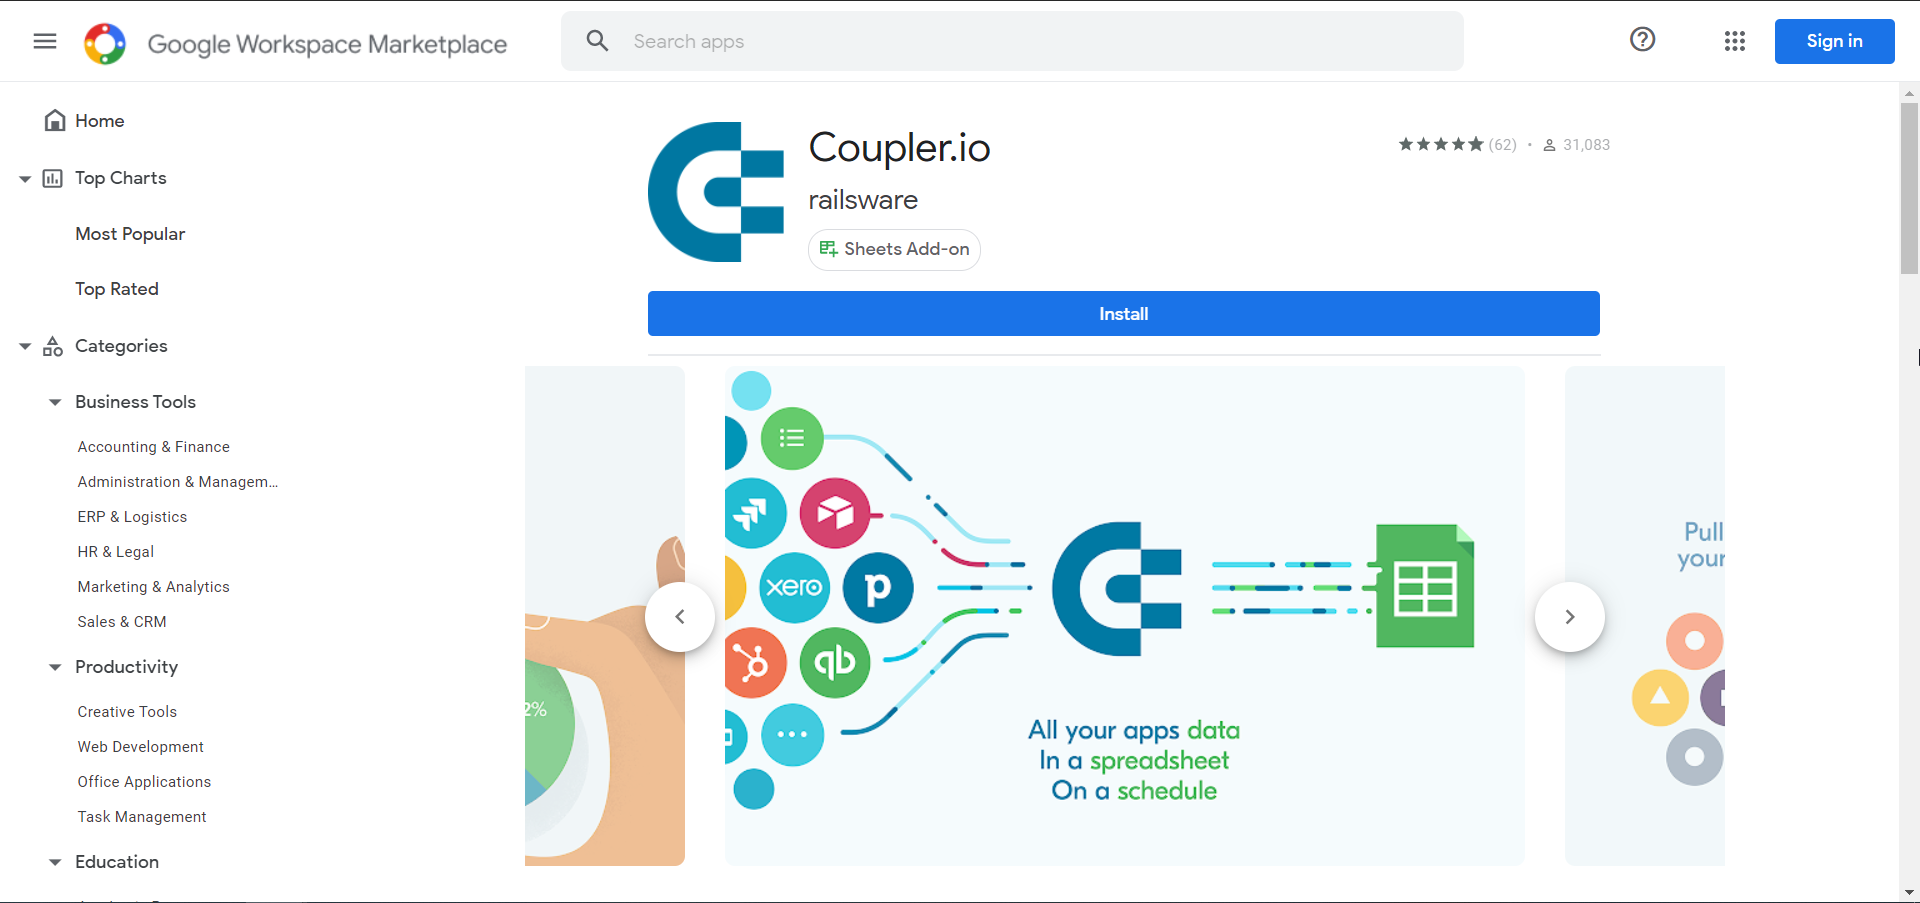 Coupler.io on Google Workspace Marketplace